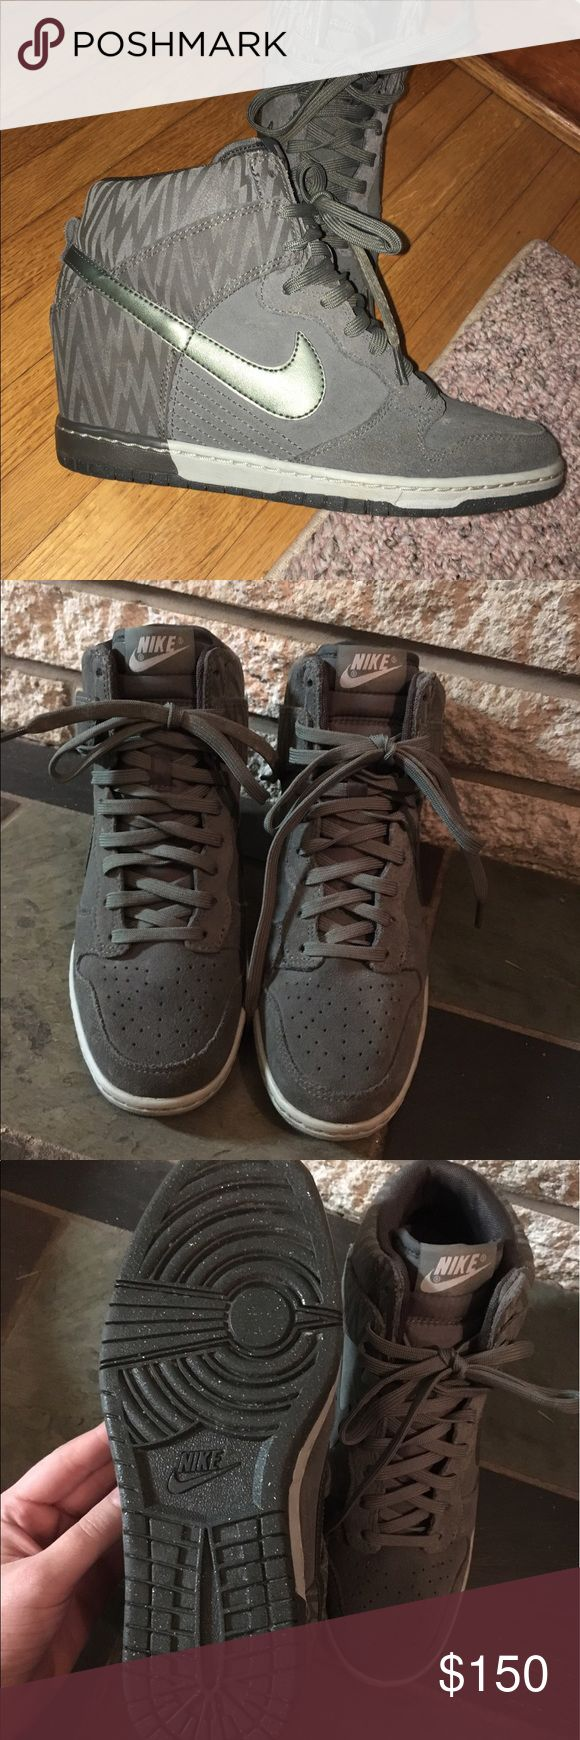 Nike Dunk Sky Hi These Nike Dunks are a pretty rare color combo. Most of the Olive Dunks have white bottoms while these ones are grey & speckled olive sole. I honestly had a hard time finding any online. Purchased in Vegas and never worn. You'll have a hard time finding these puppies!! Reasonable offers welcome :) Nike Shoes Sneakers